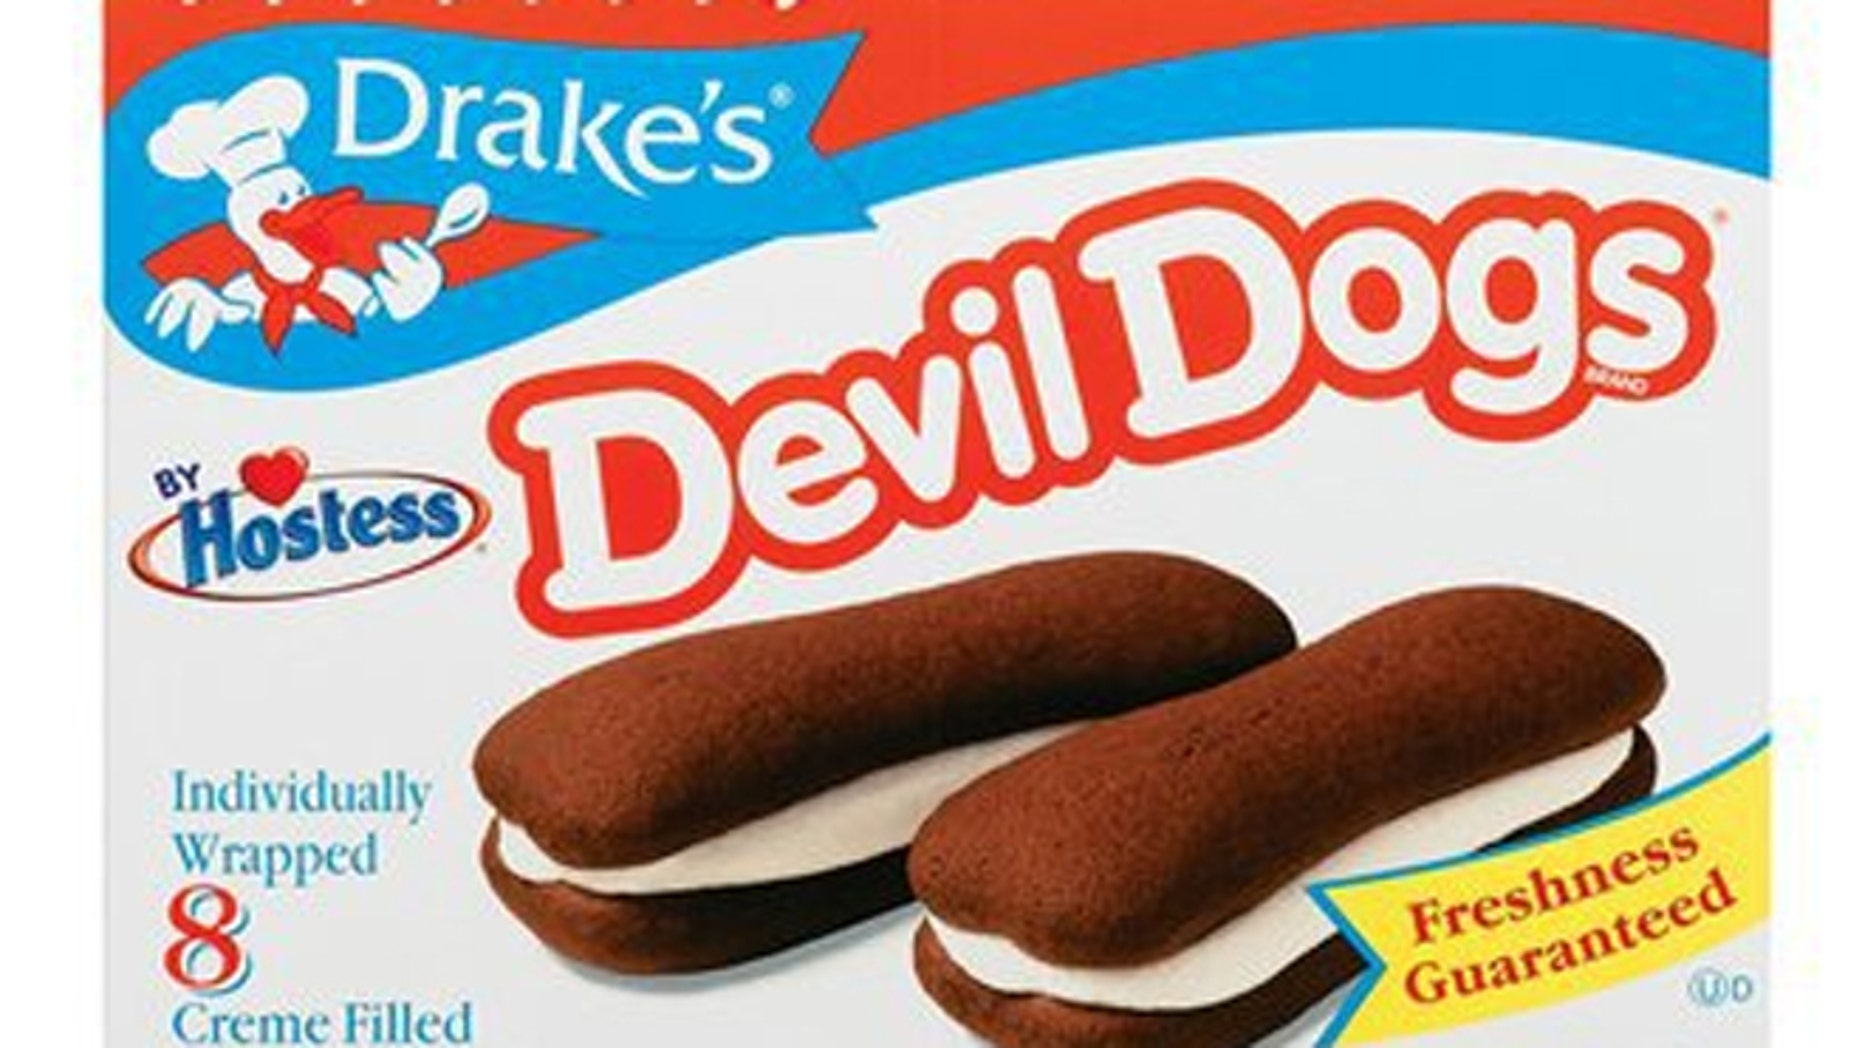 The Drake's cakes line, which includes Devil Dogs, Yankee Doodles and Yodels, will soon be on store shelves again.